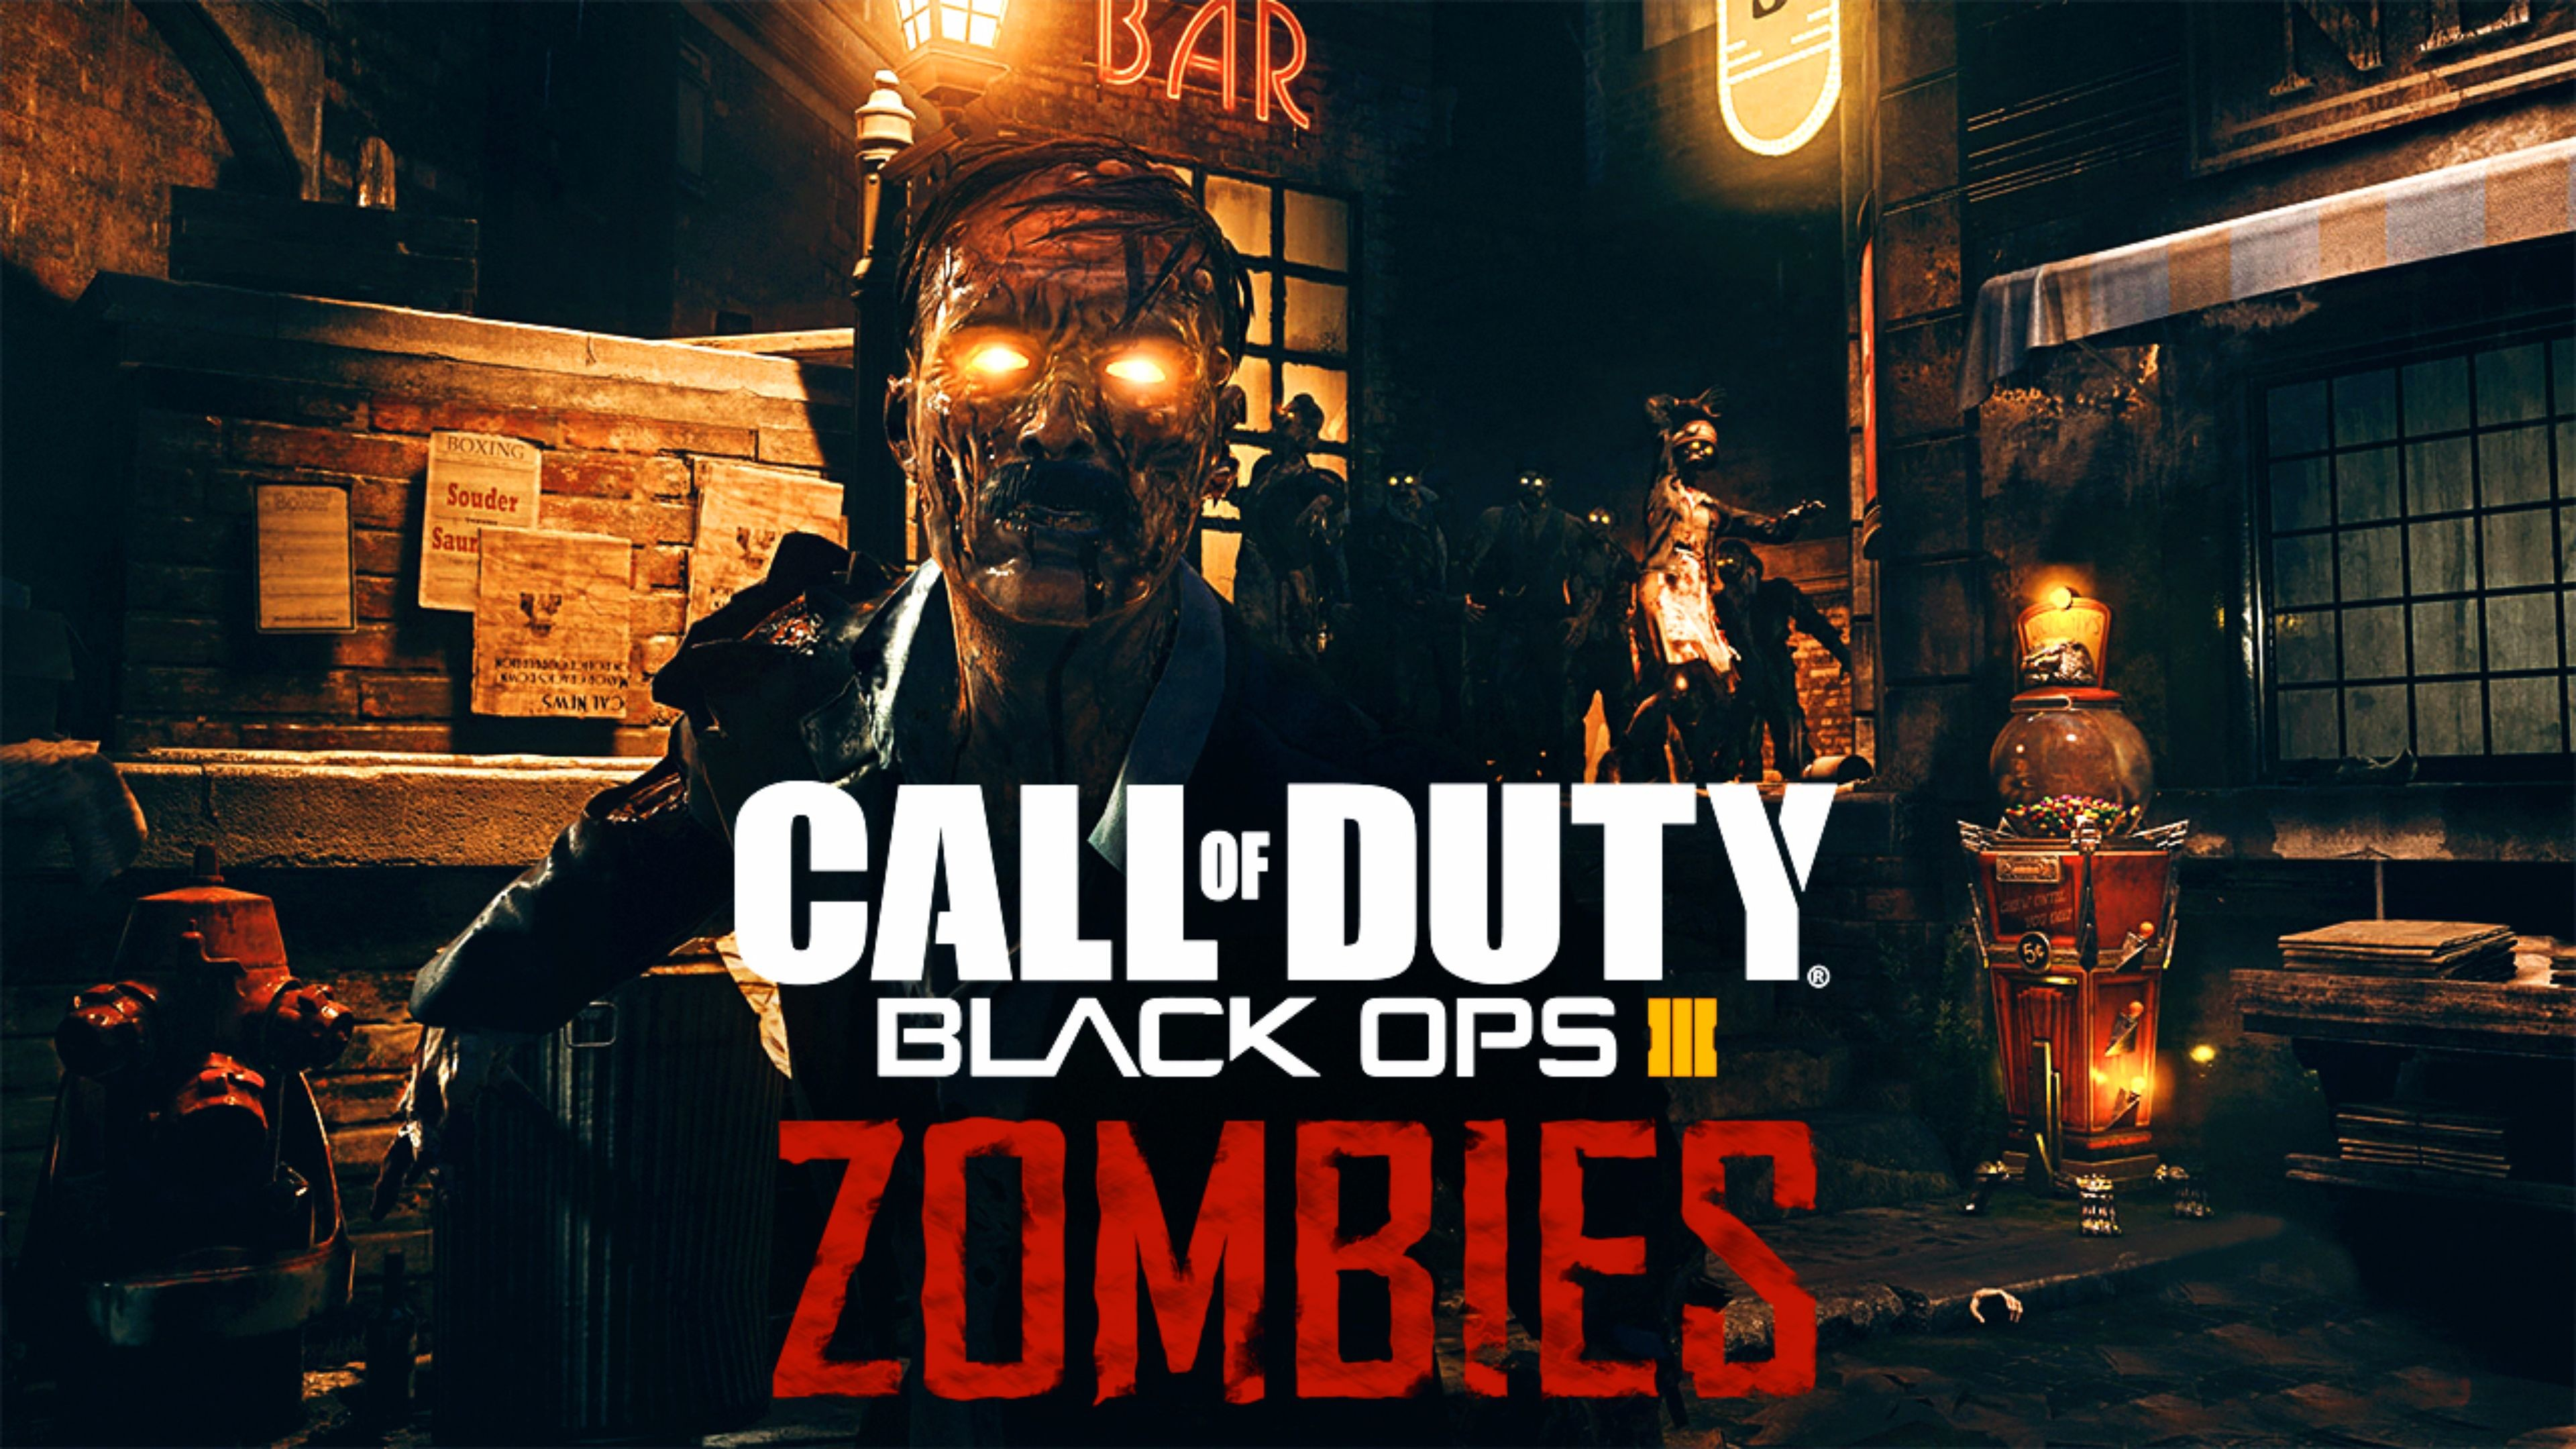 Download Wallpapers Hd Call Of Duty Black Ops 2